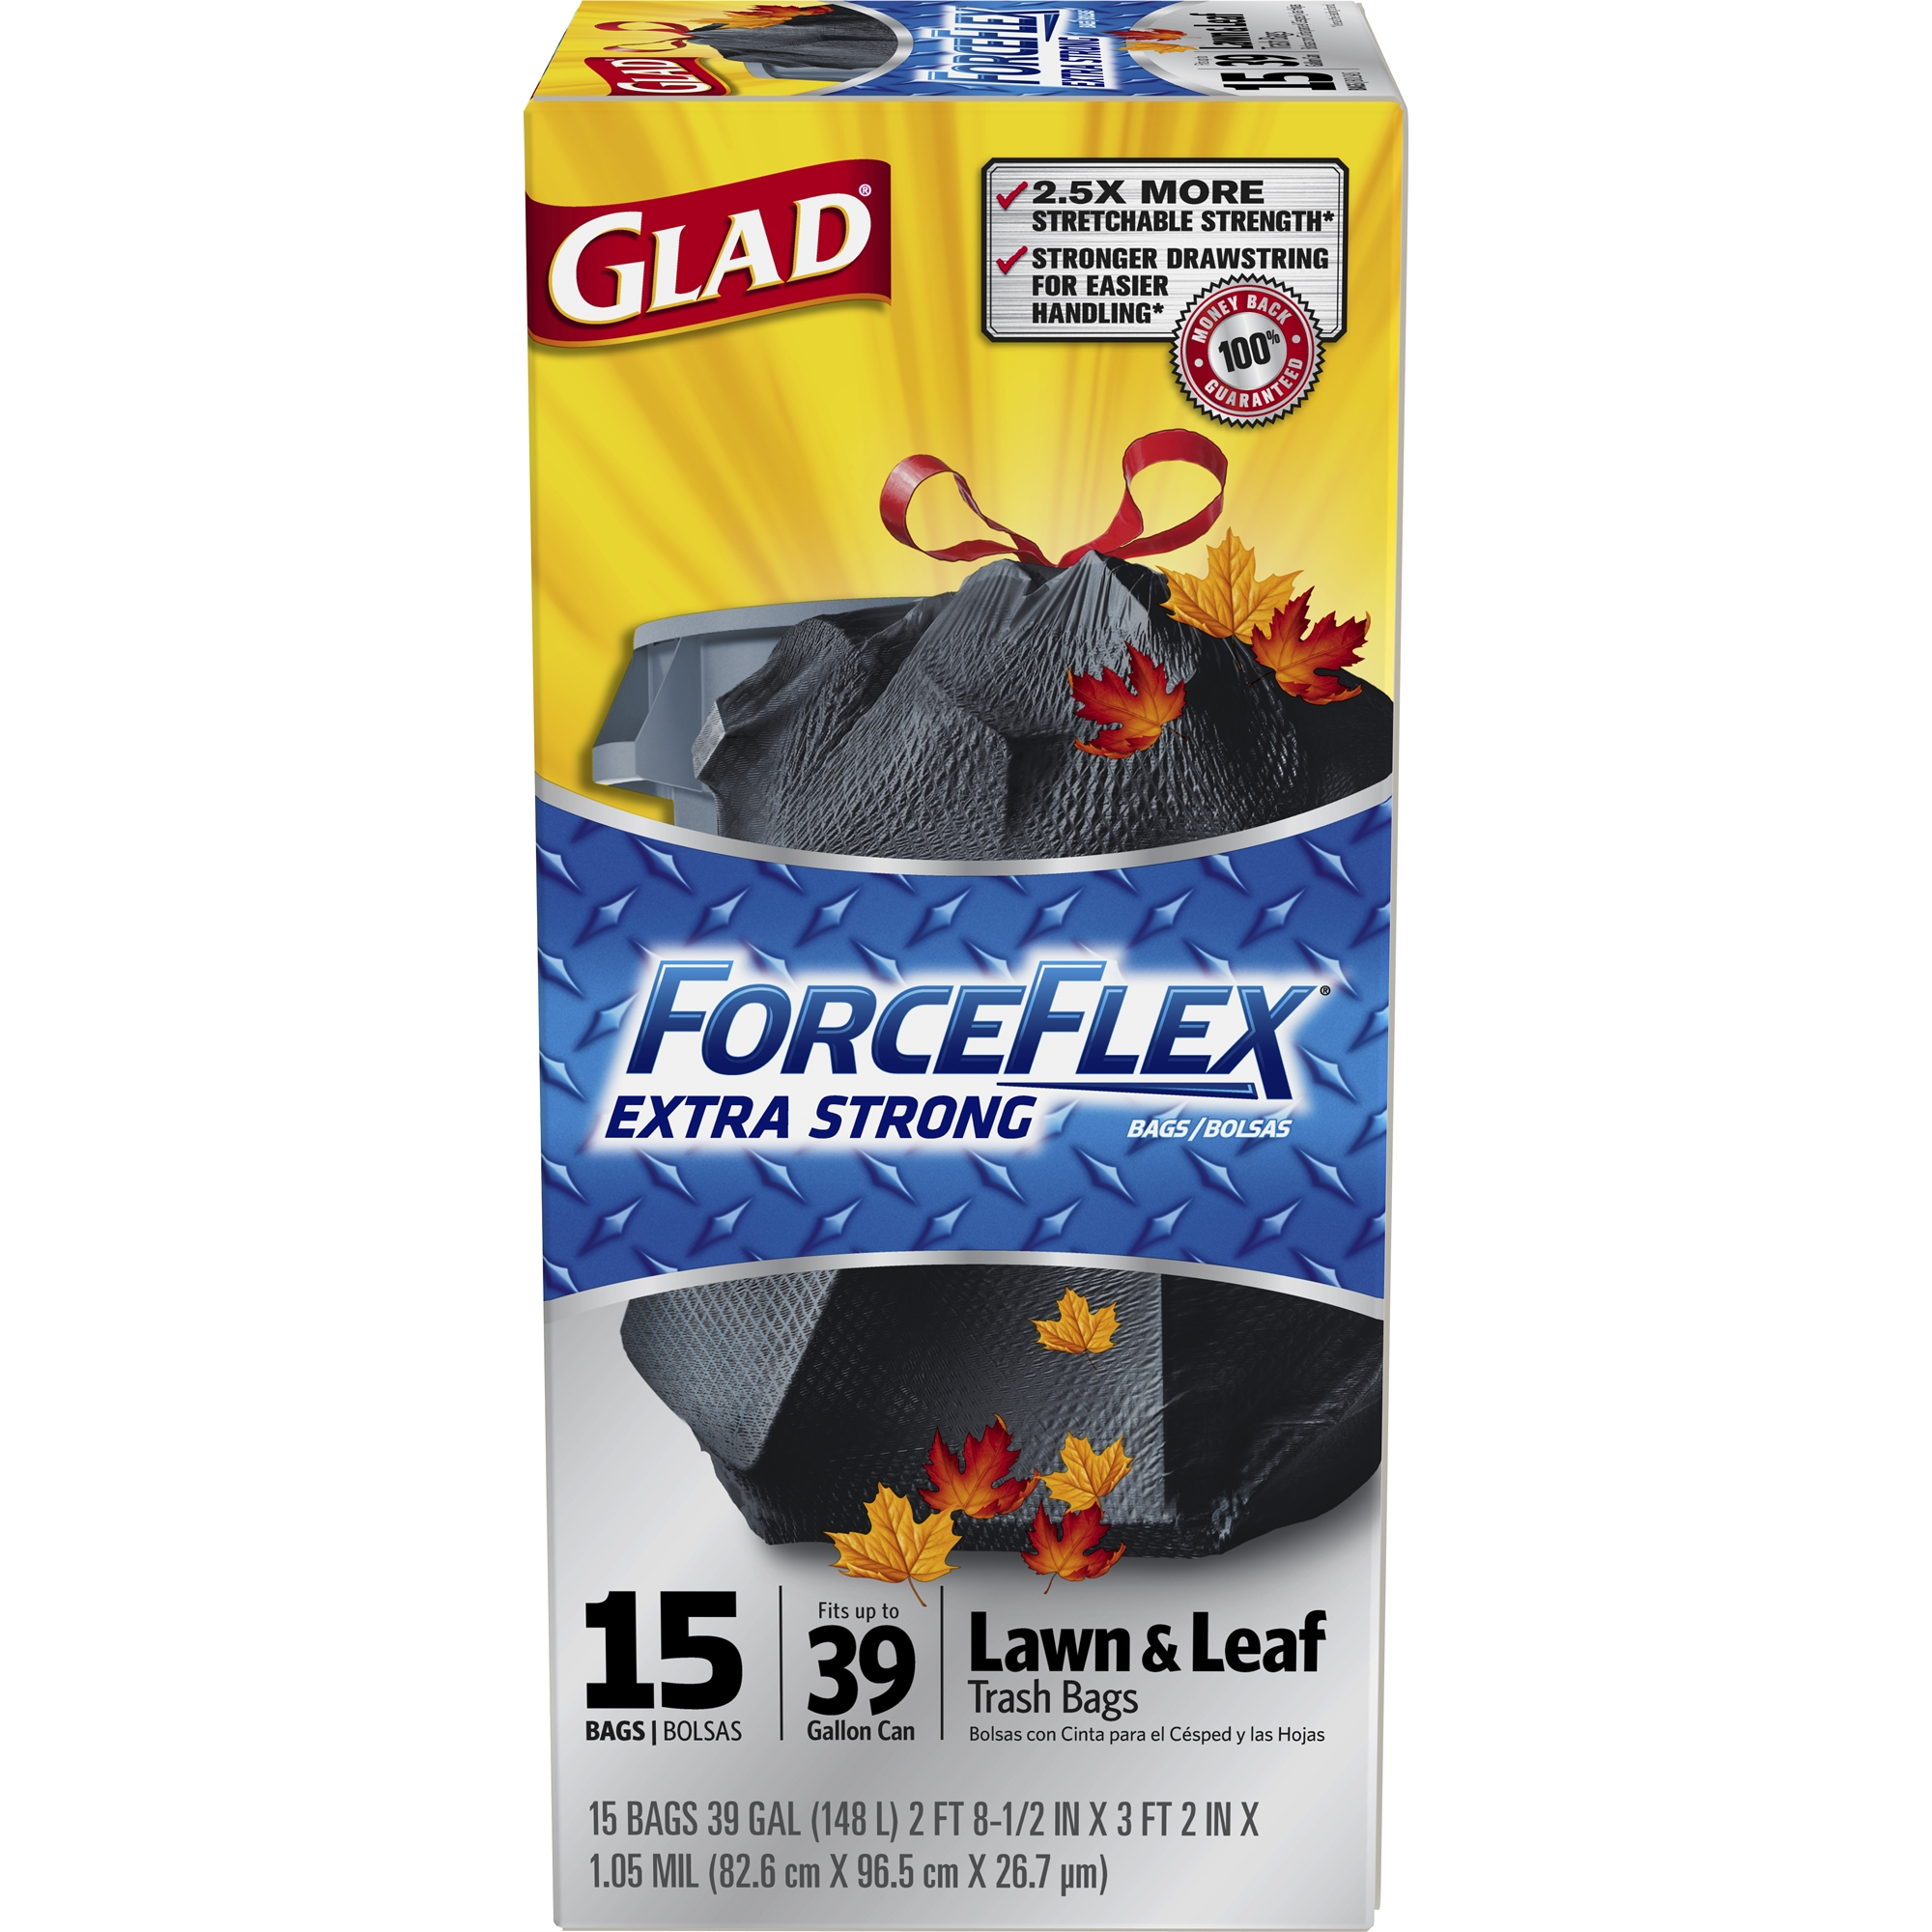 Glad ForceFlex Extra Strong Lawn and Leaf Drawstring Trash Bags, 39 Gallon, 15 Count